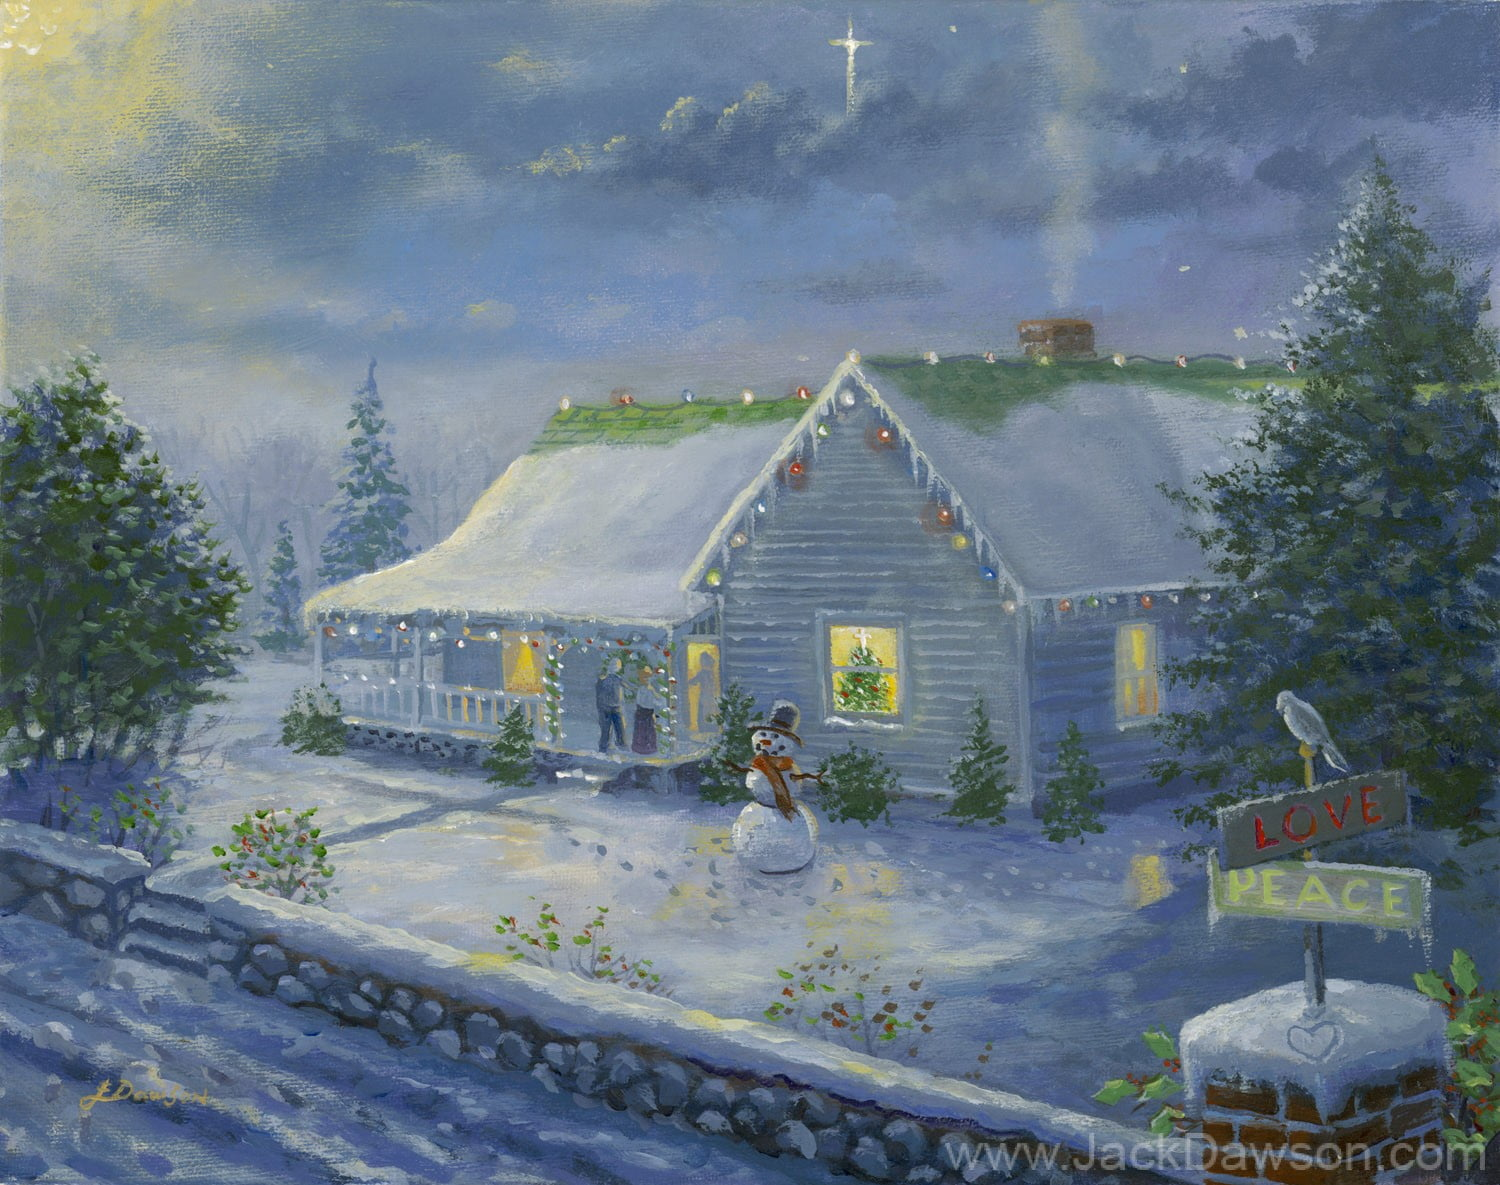 Home For Christmas by Jack E. Dawson